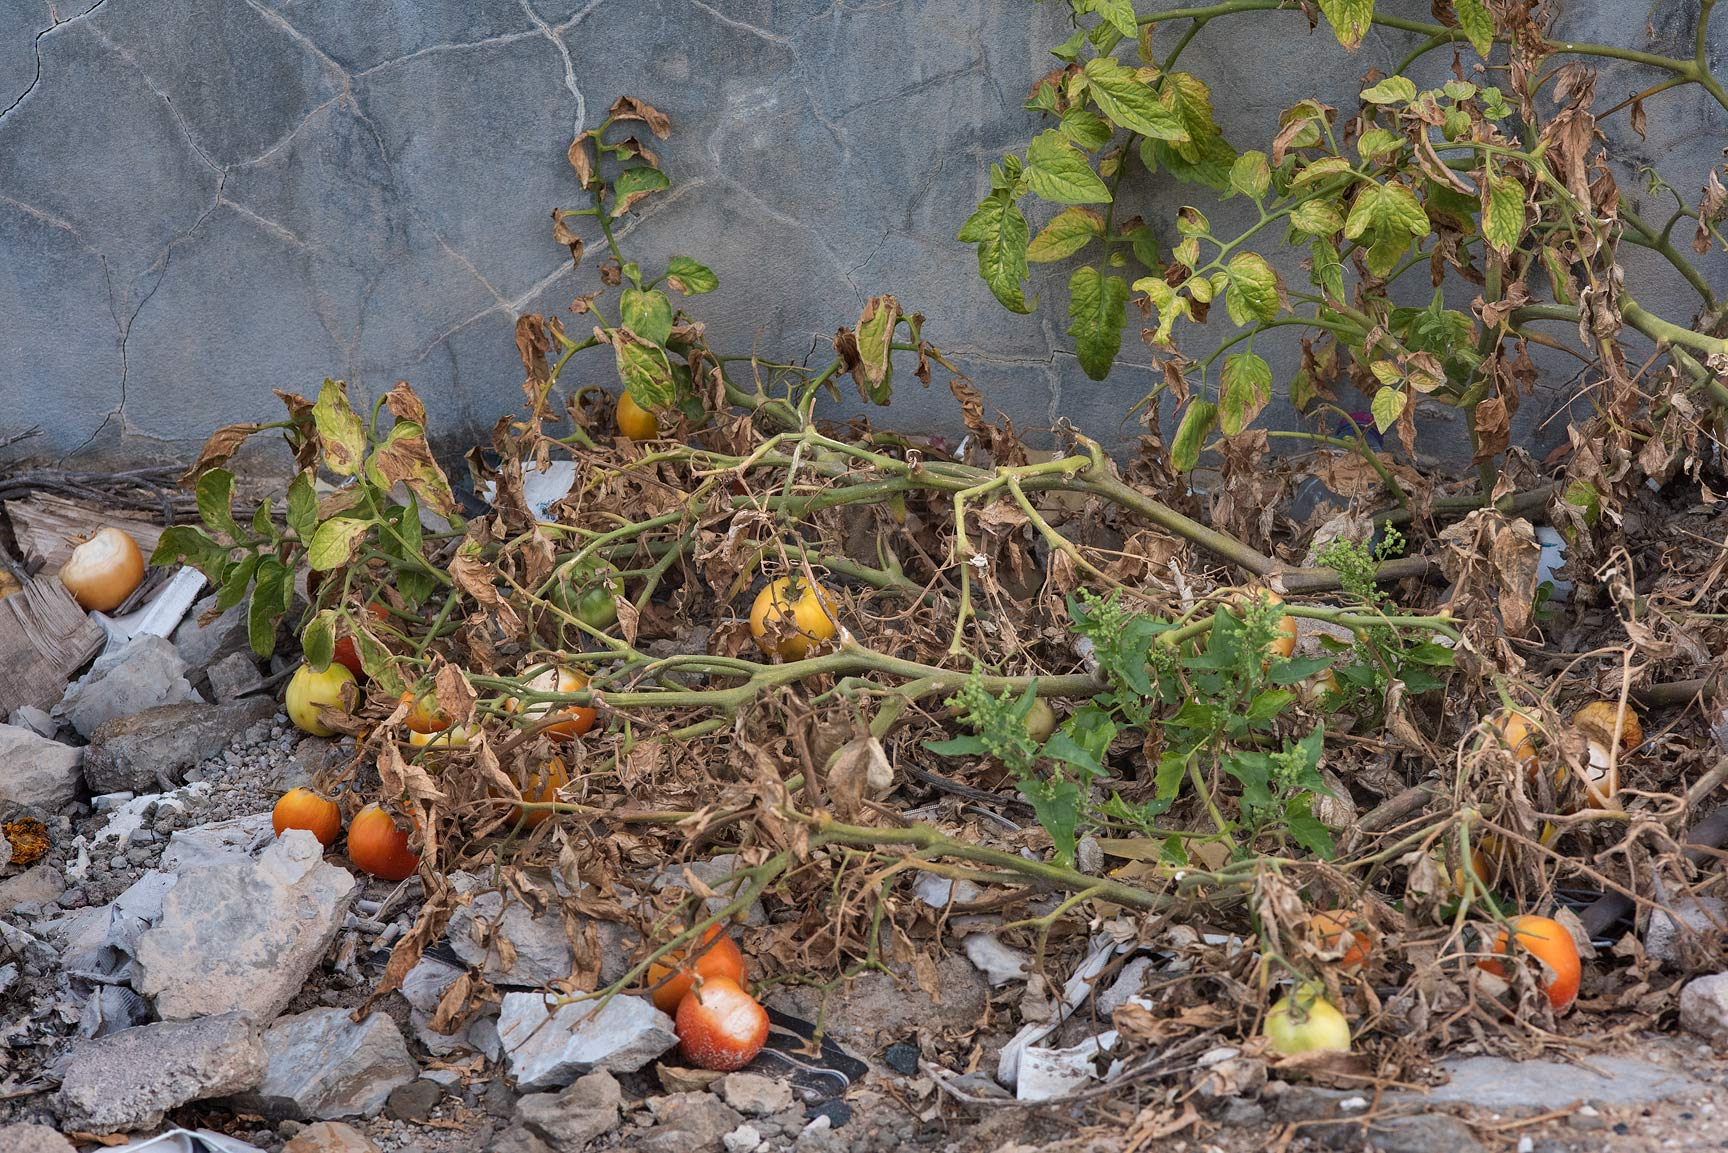 Tomato plant (Solanum lycopersicum) with fruits...St. in Al Luqta area. Doha, Qatar